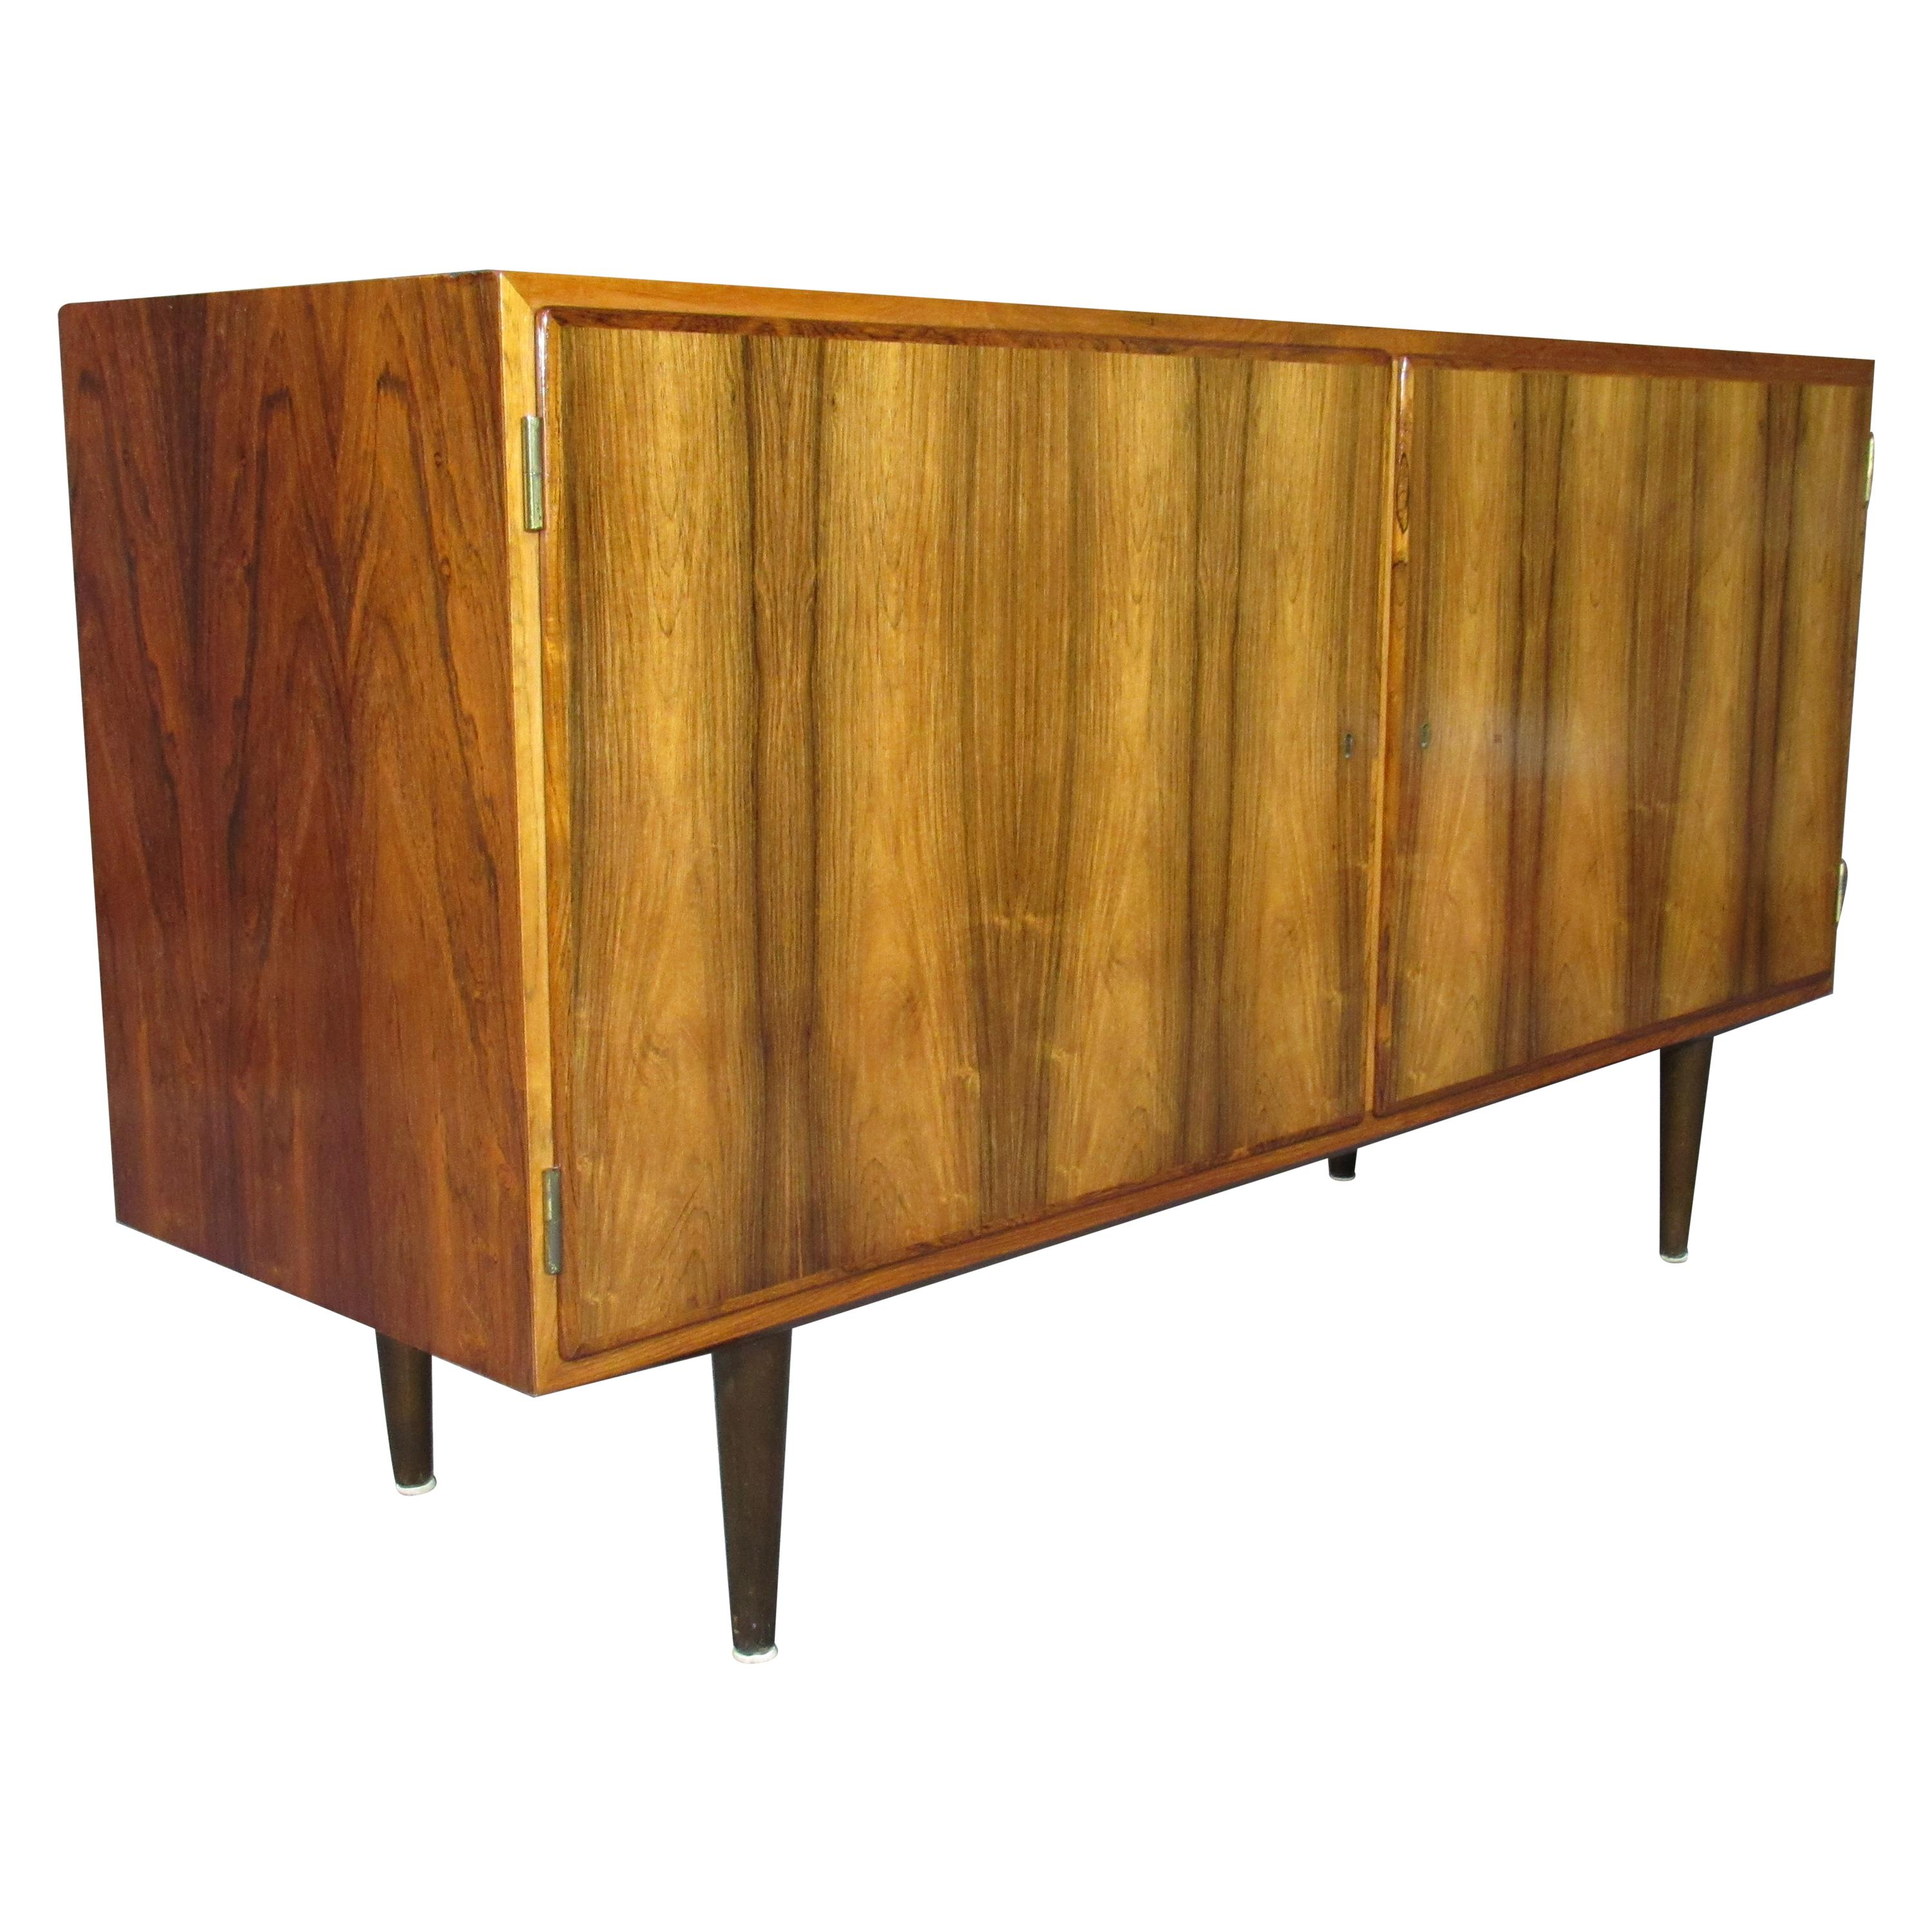 1960s Midcentury Danish Modern Rosewood Credenza Sideboard by Poul Hundevad